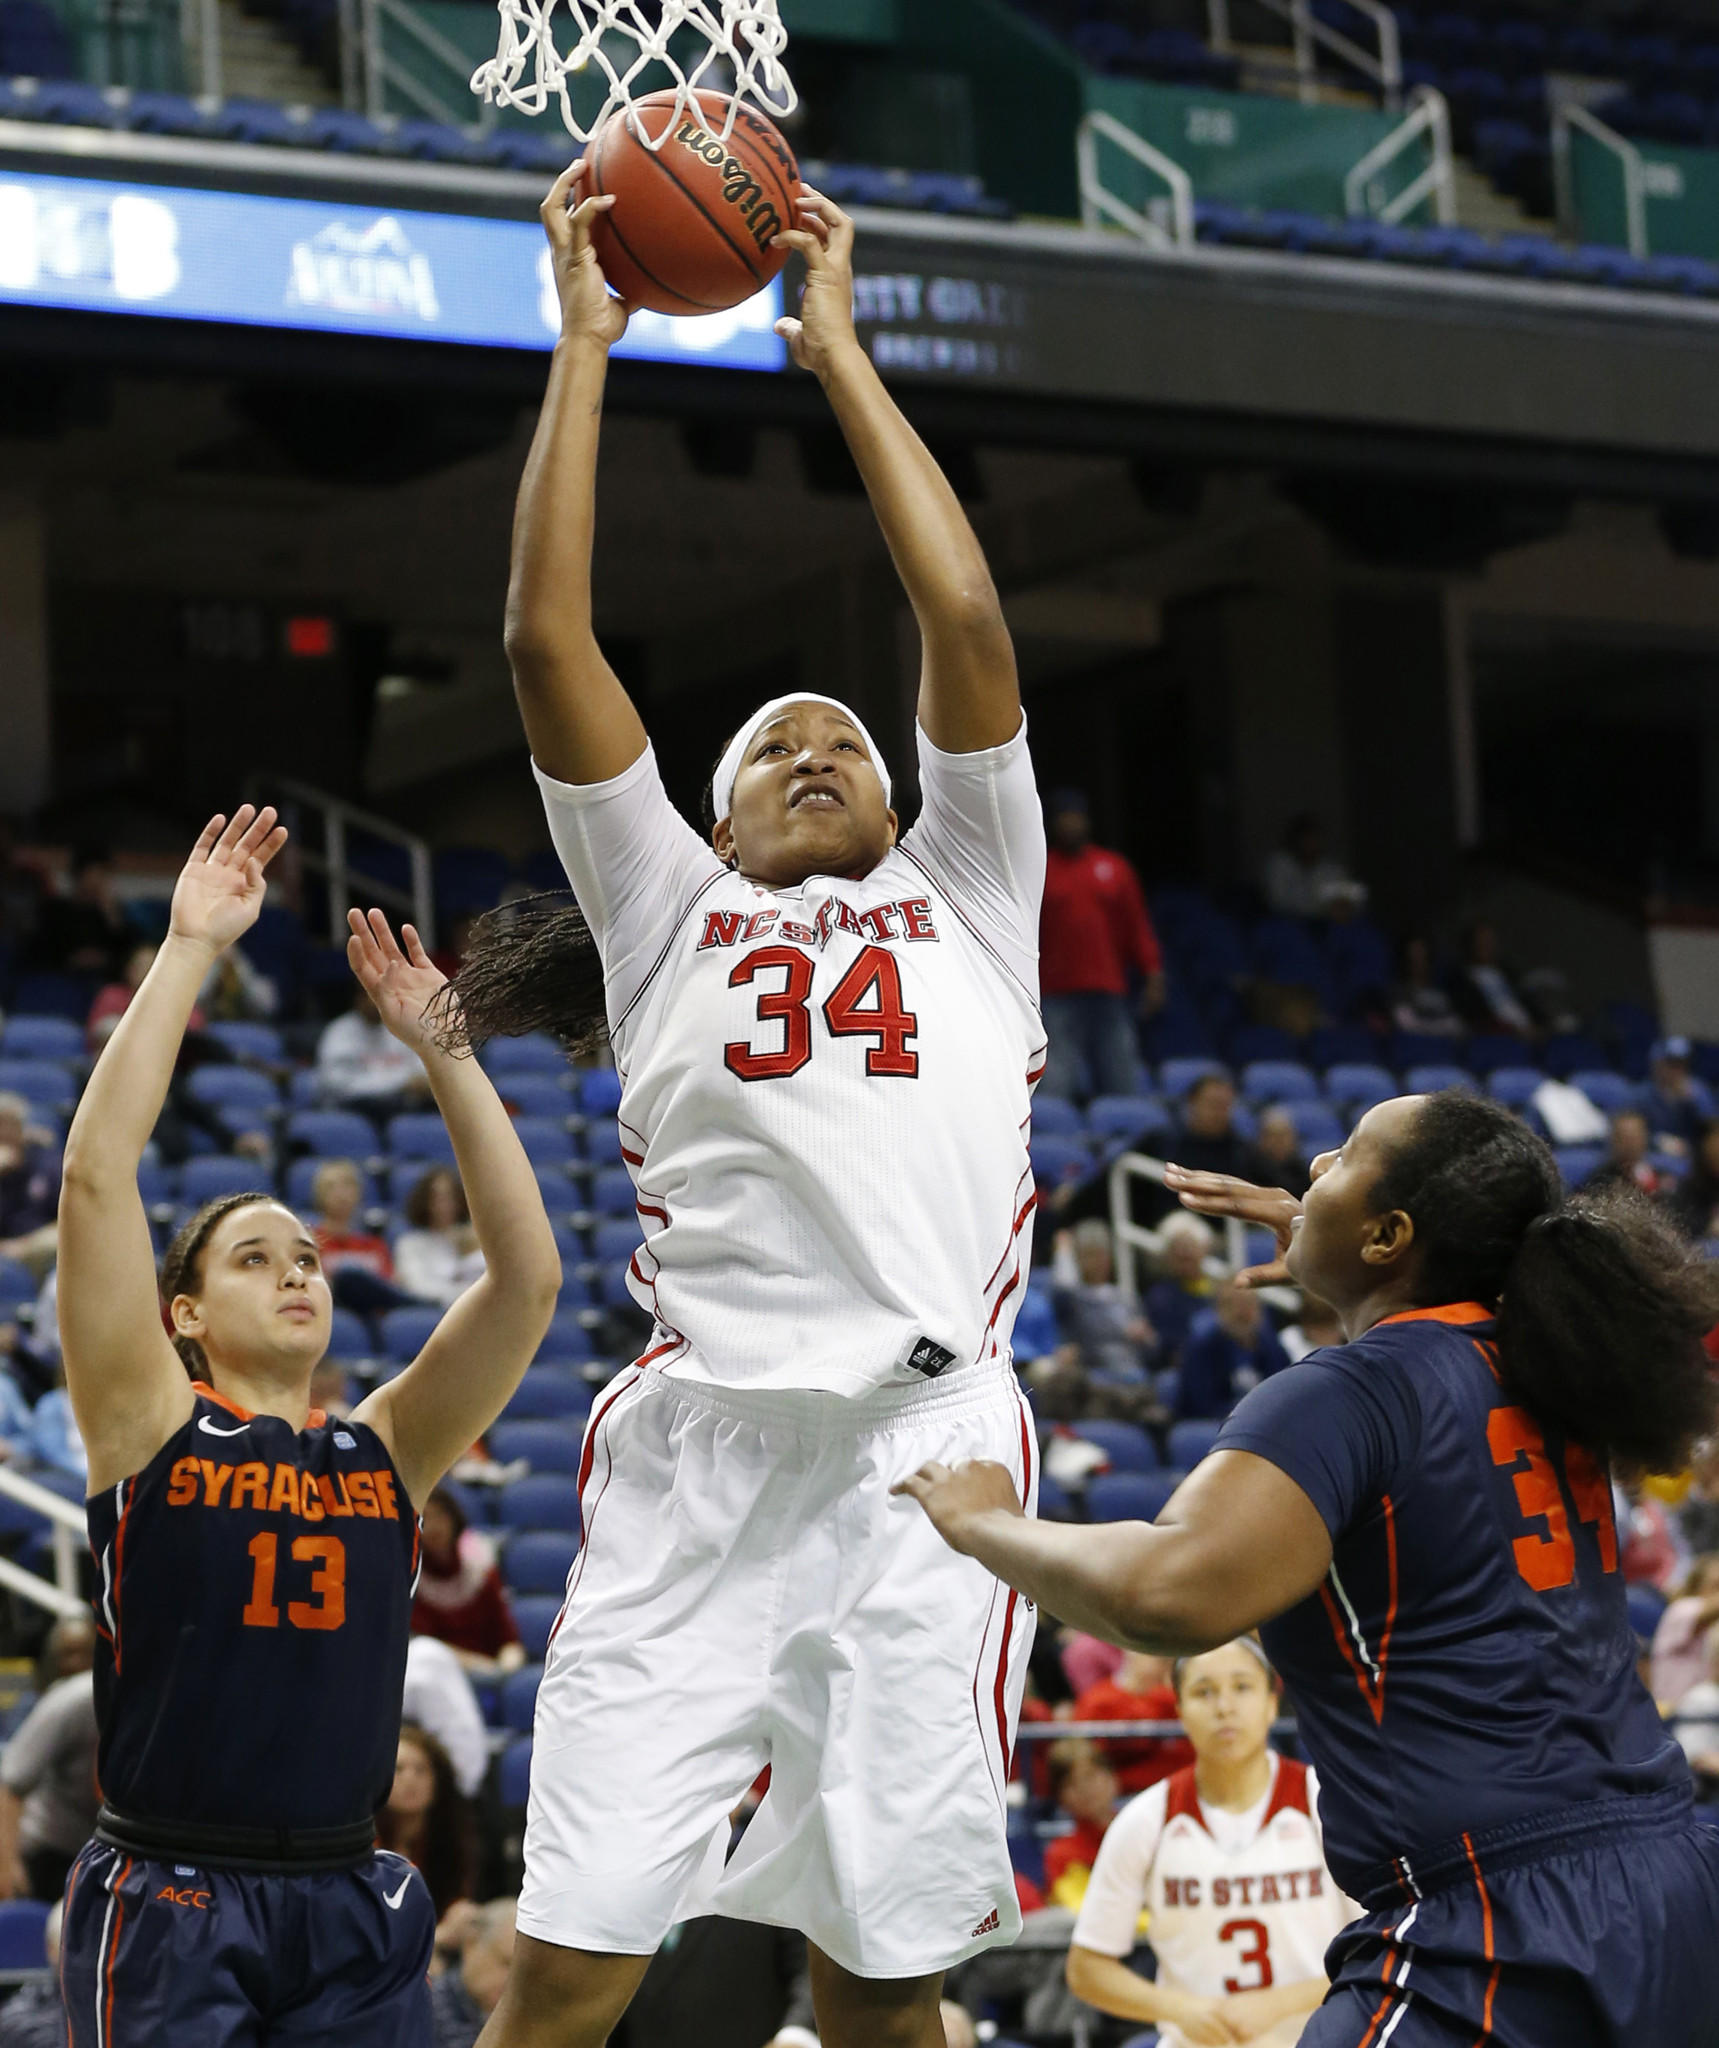 North Carolina State's Markeisha Gatling goes to the basket against Syracuse's Brianna Butler and Shakeya Leary at Greensboro Coliseum.